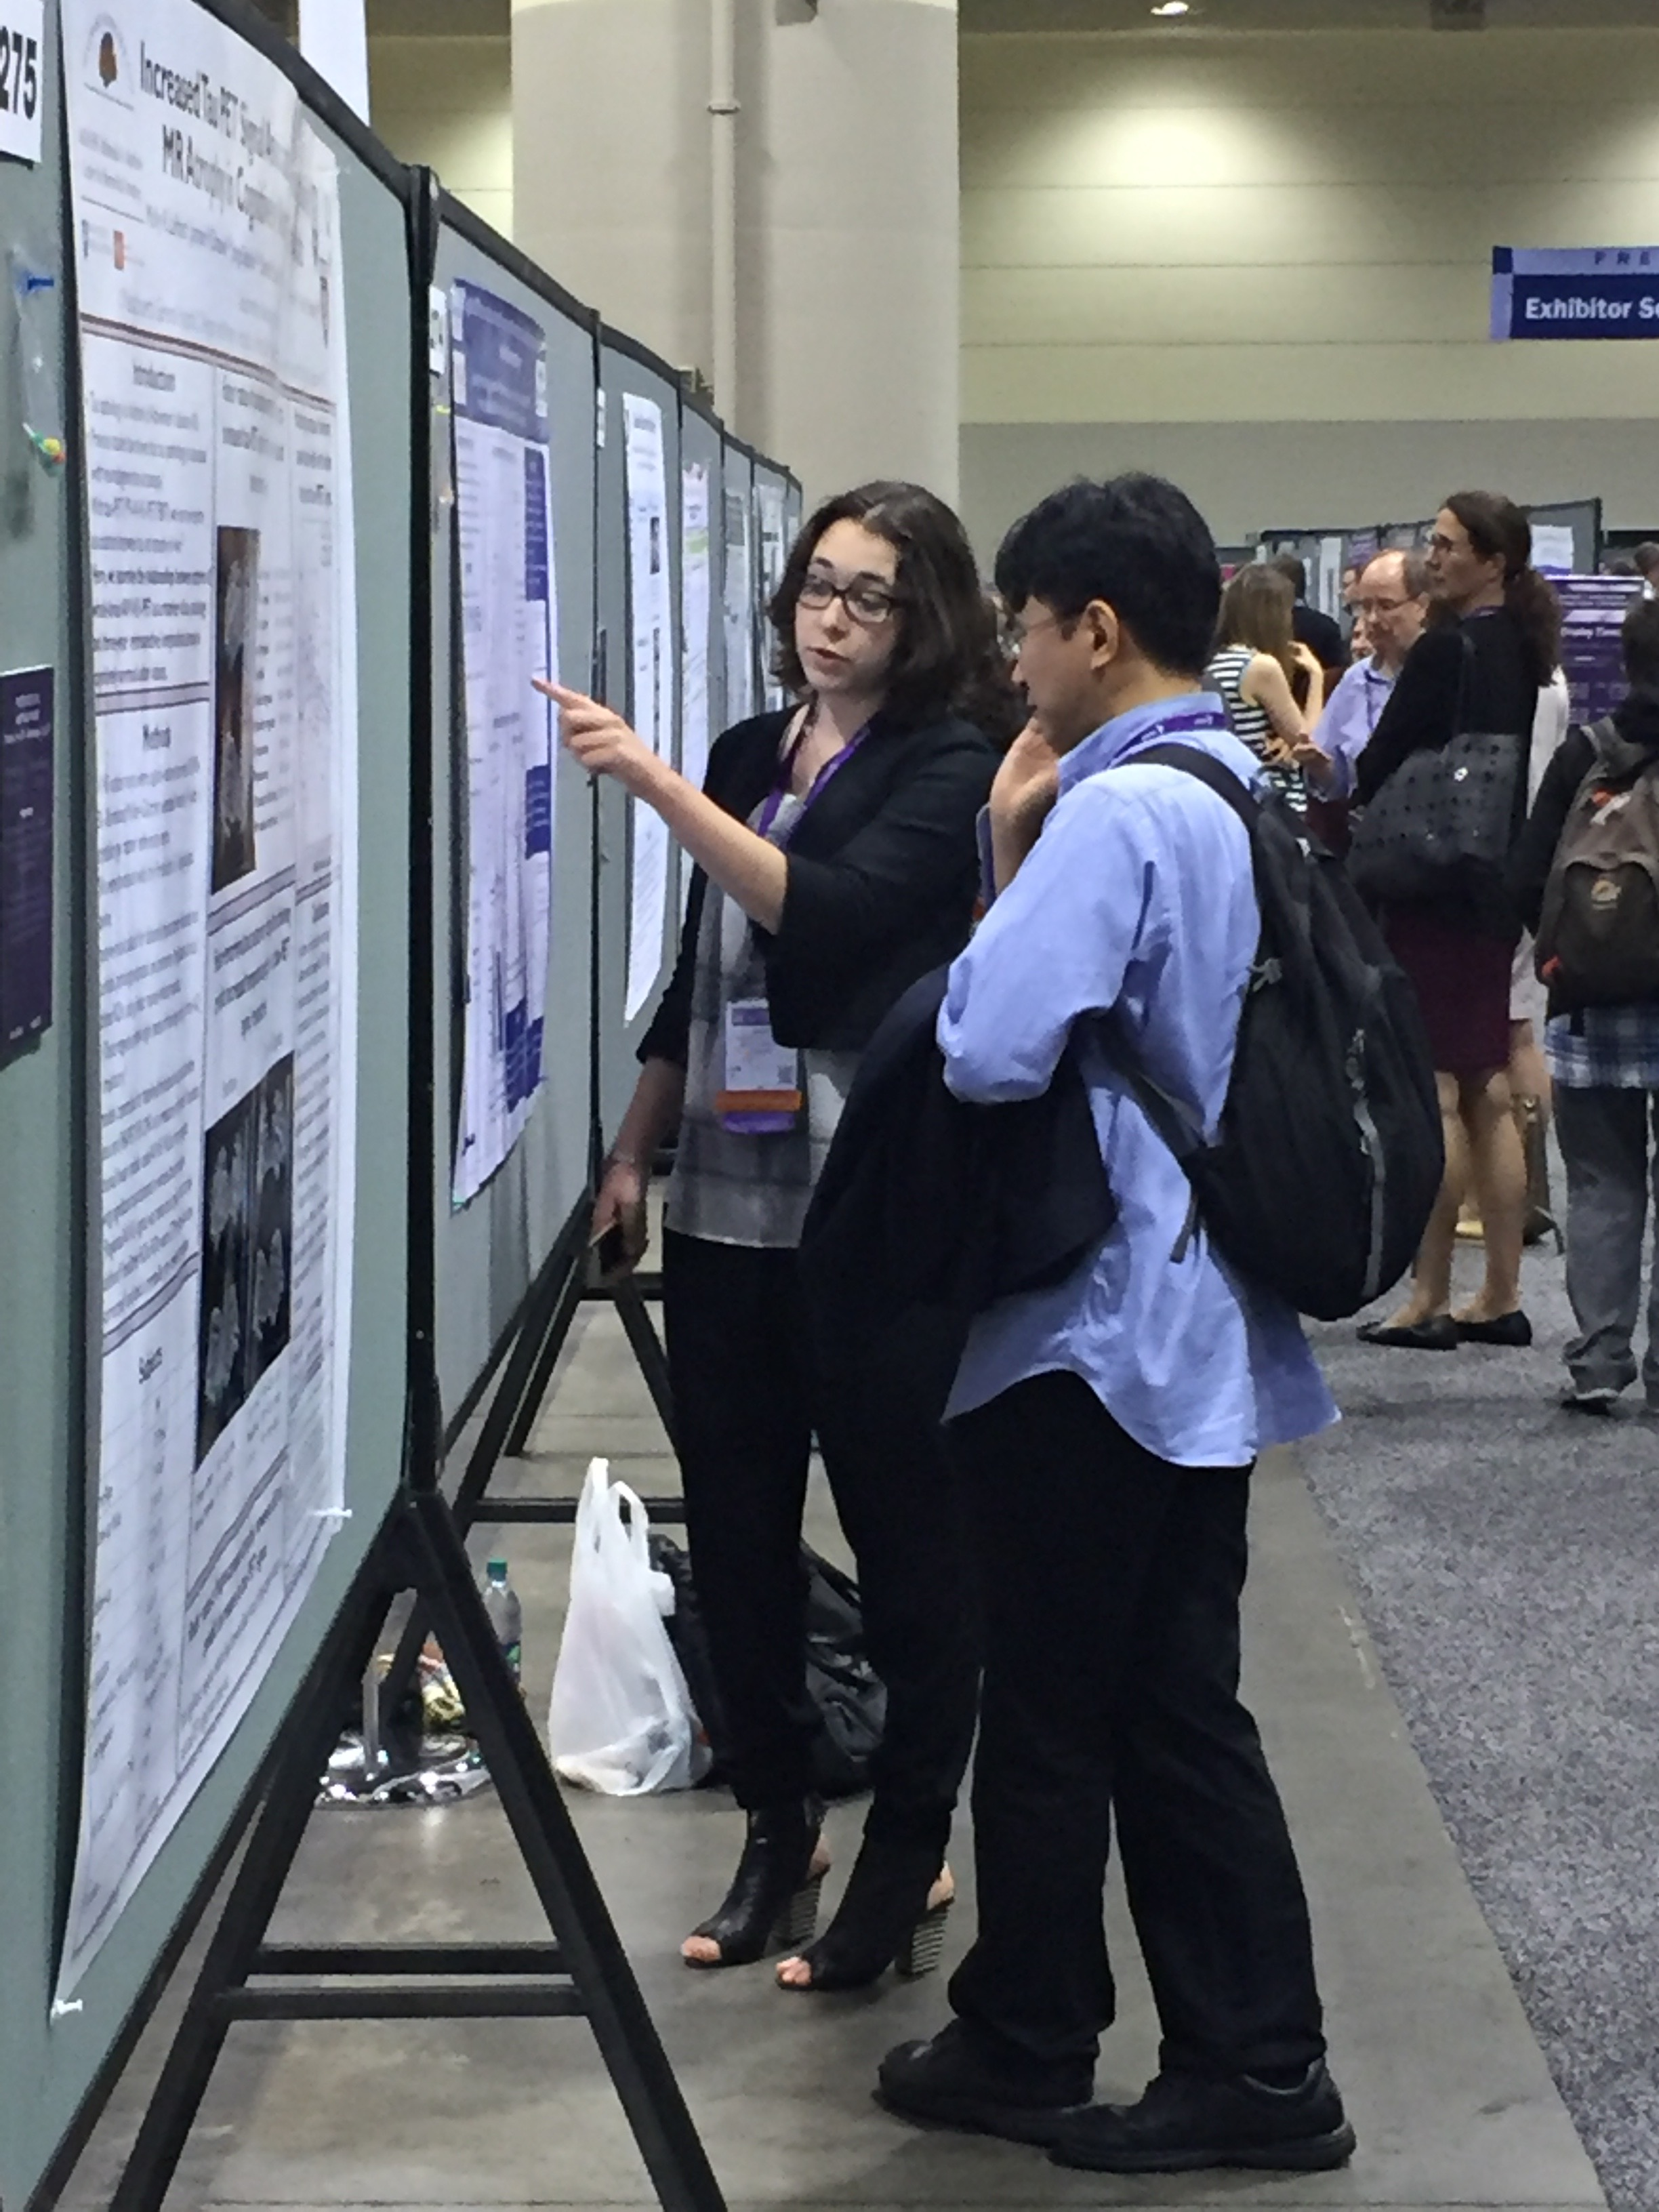 Alexa Pichet Binette presenting her poster at AAIC